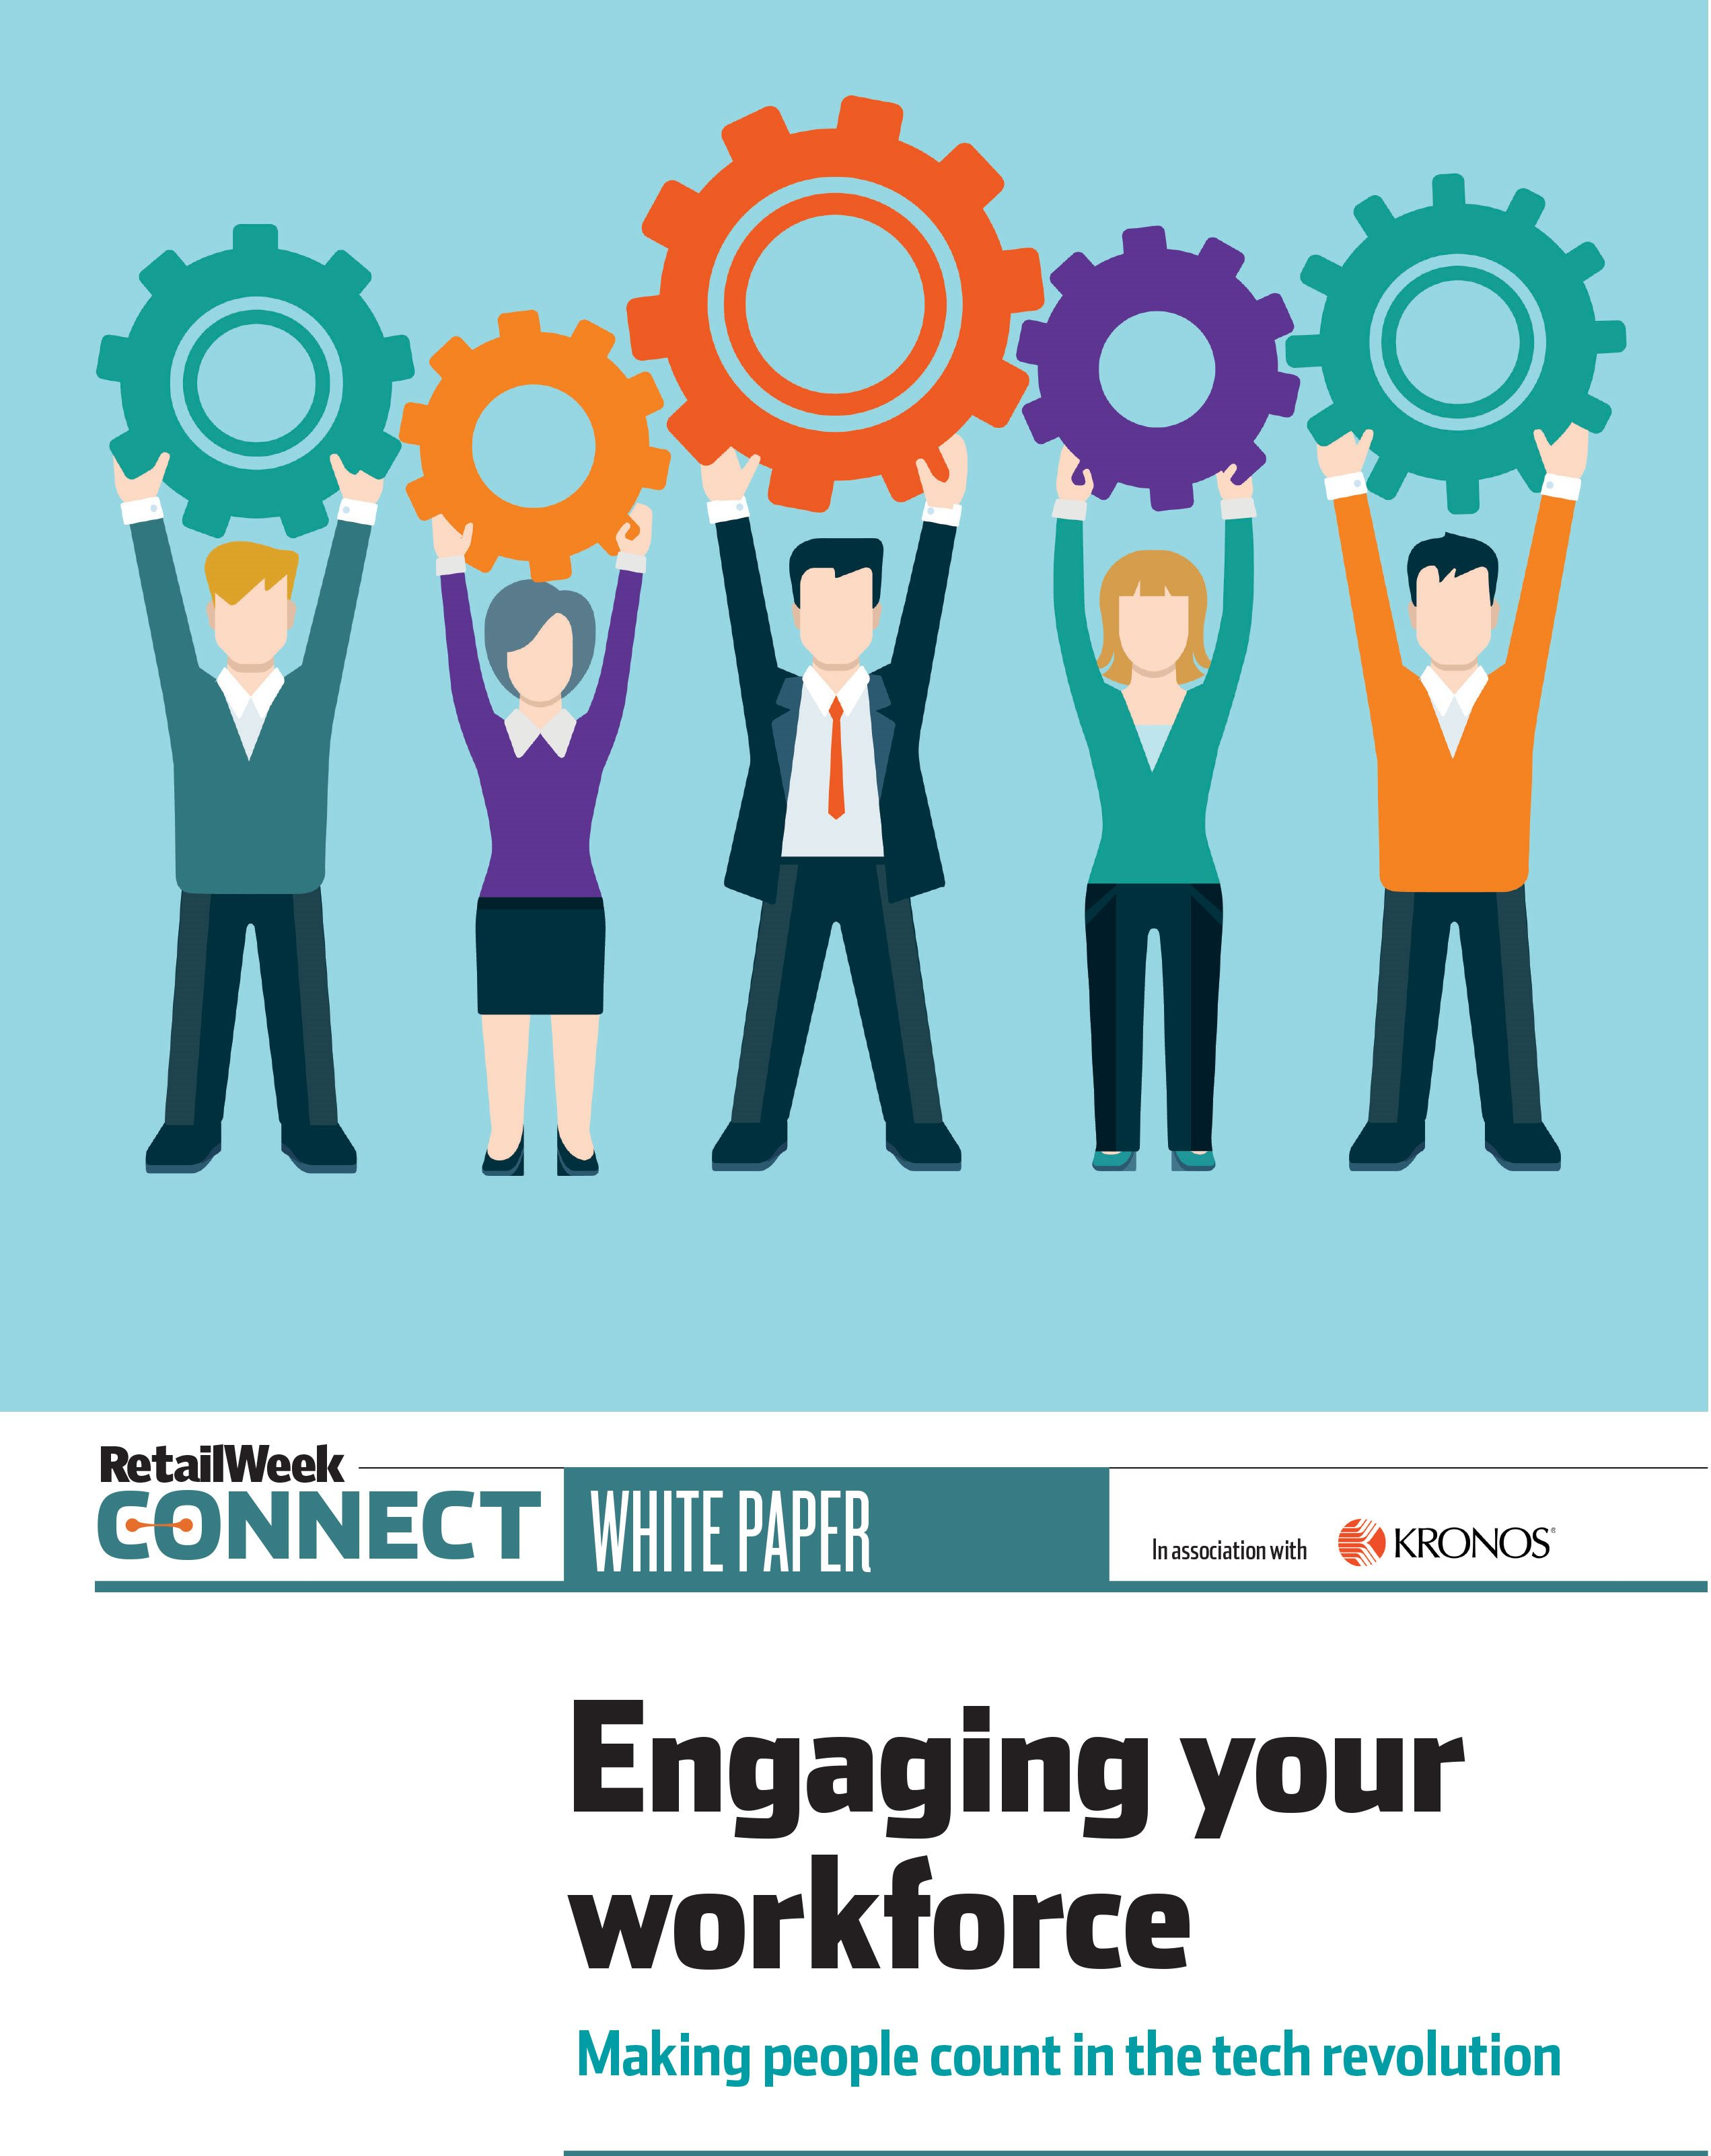 Engaging your workforce